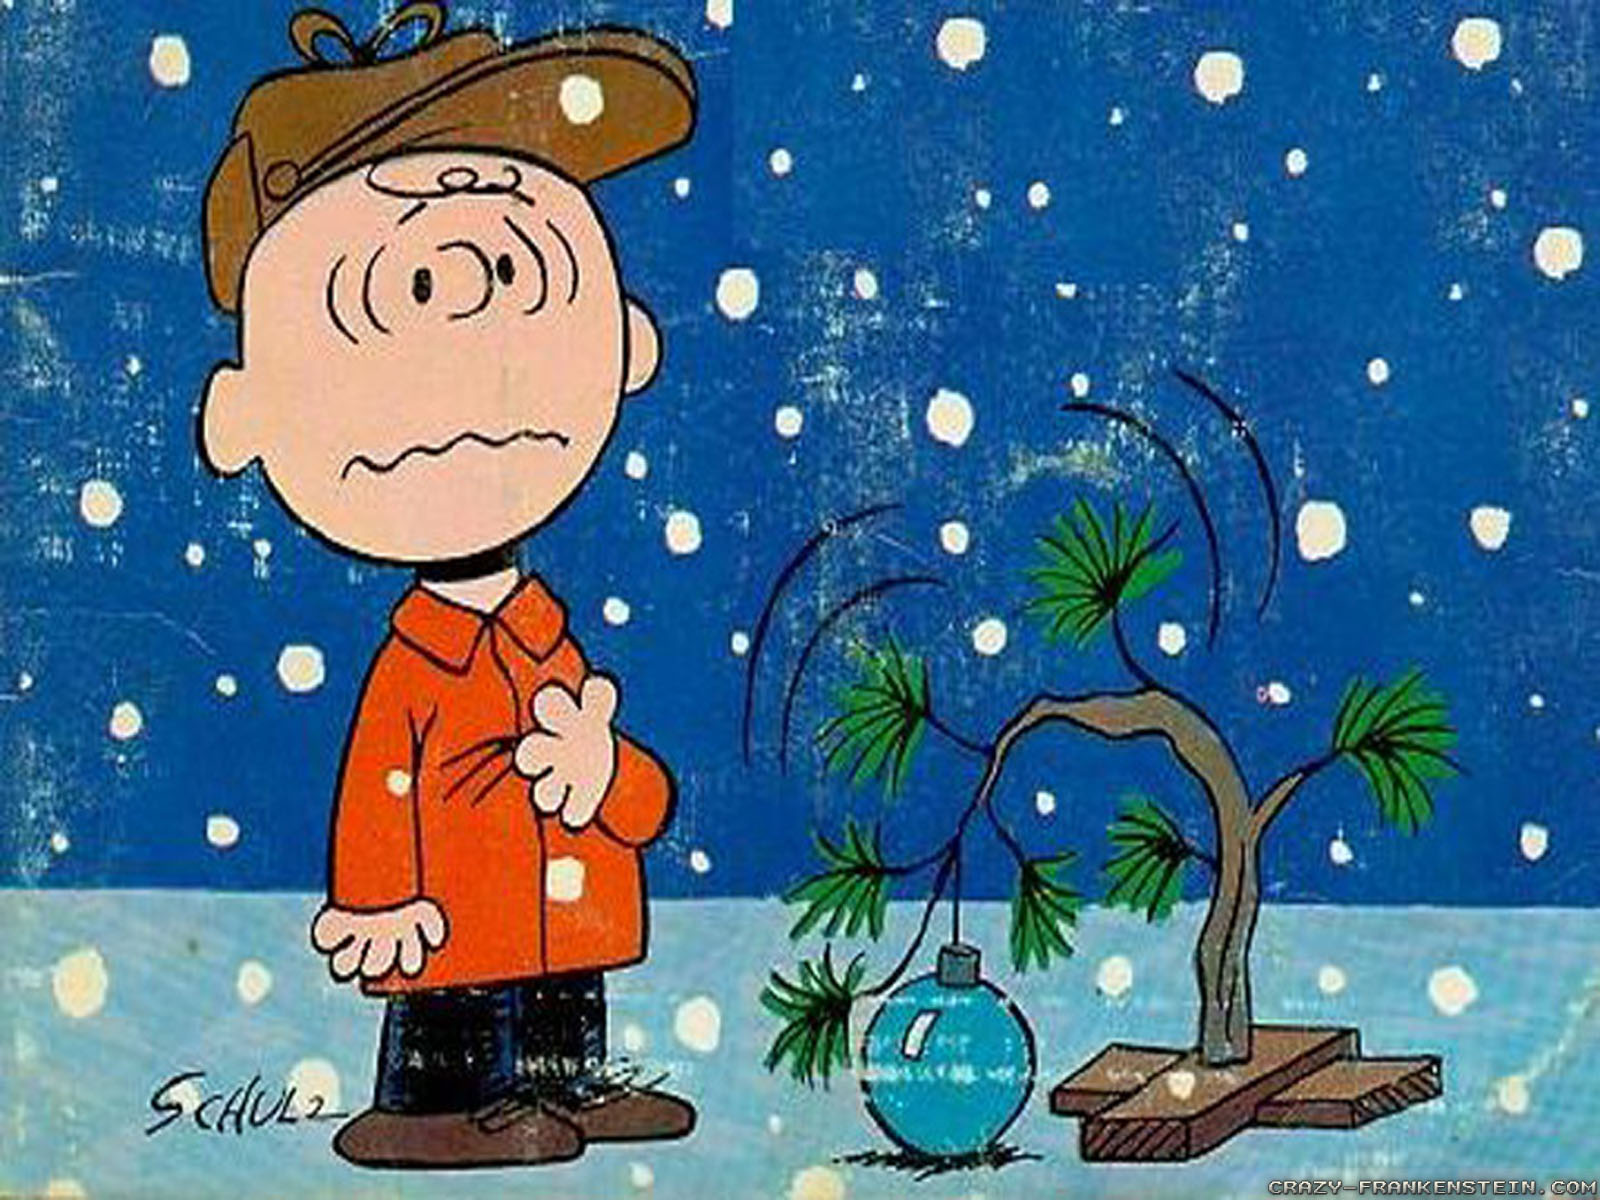 charlie brown christmas tree cartoon wallpapers 1600x1200jpg 1600x1200